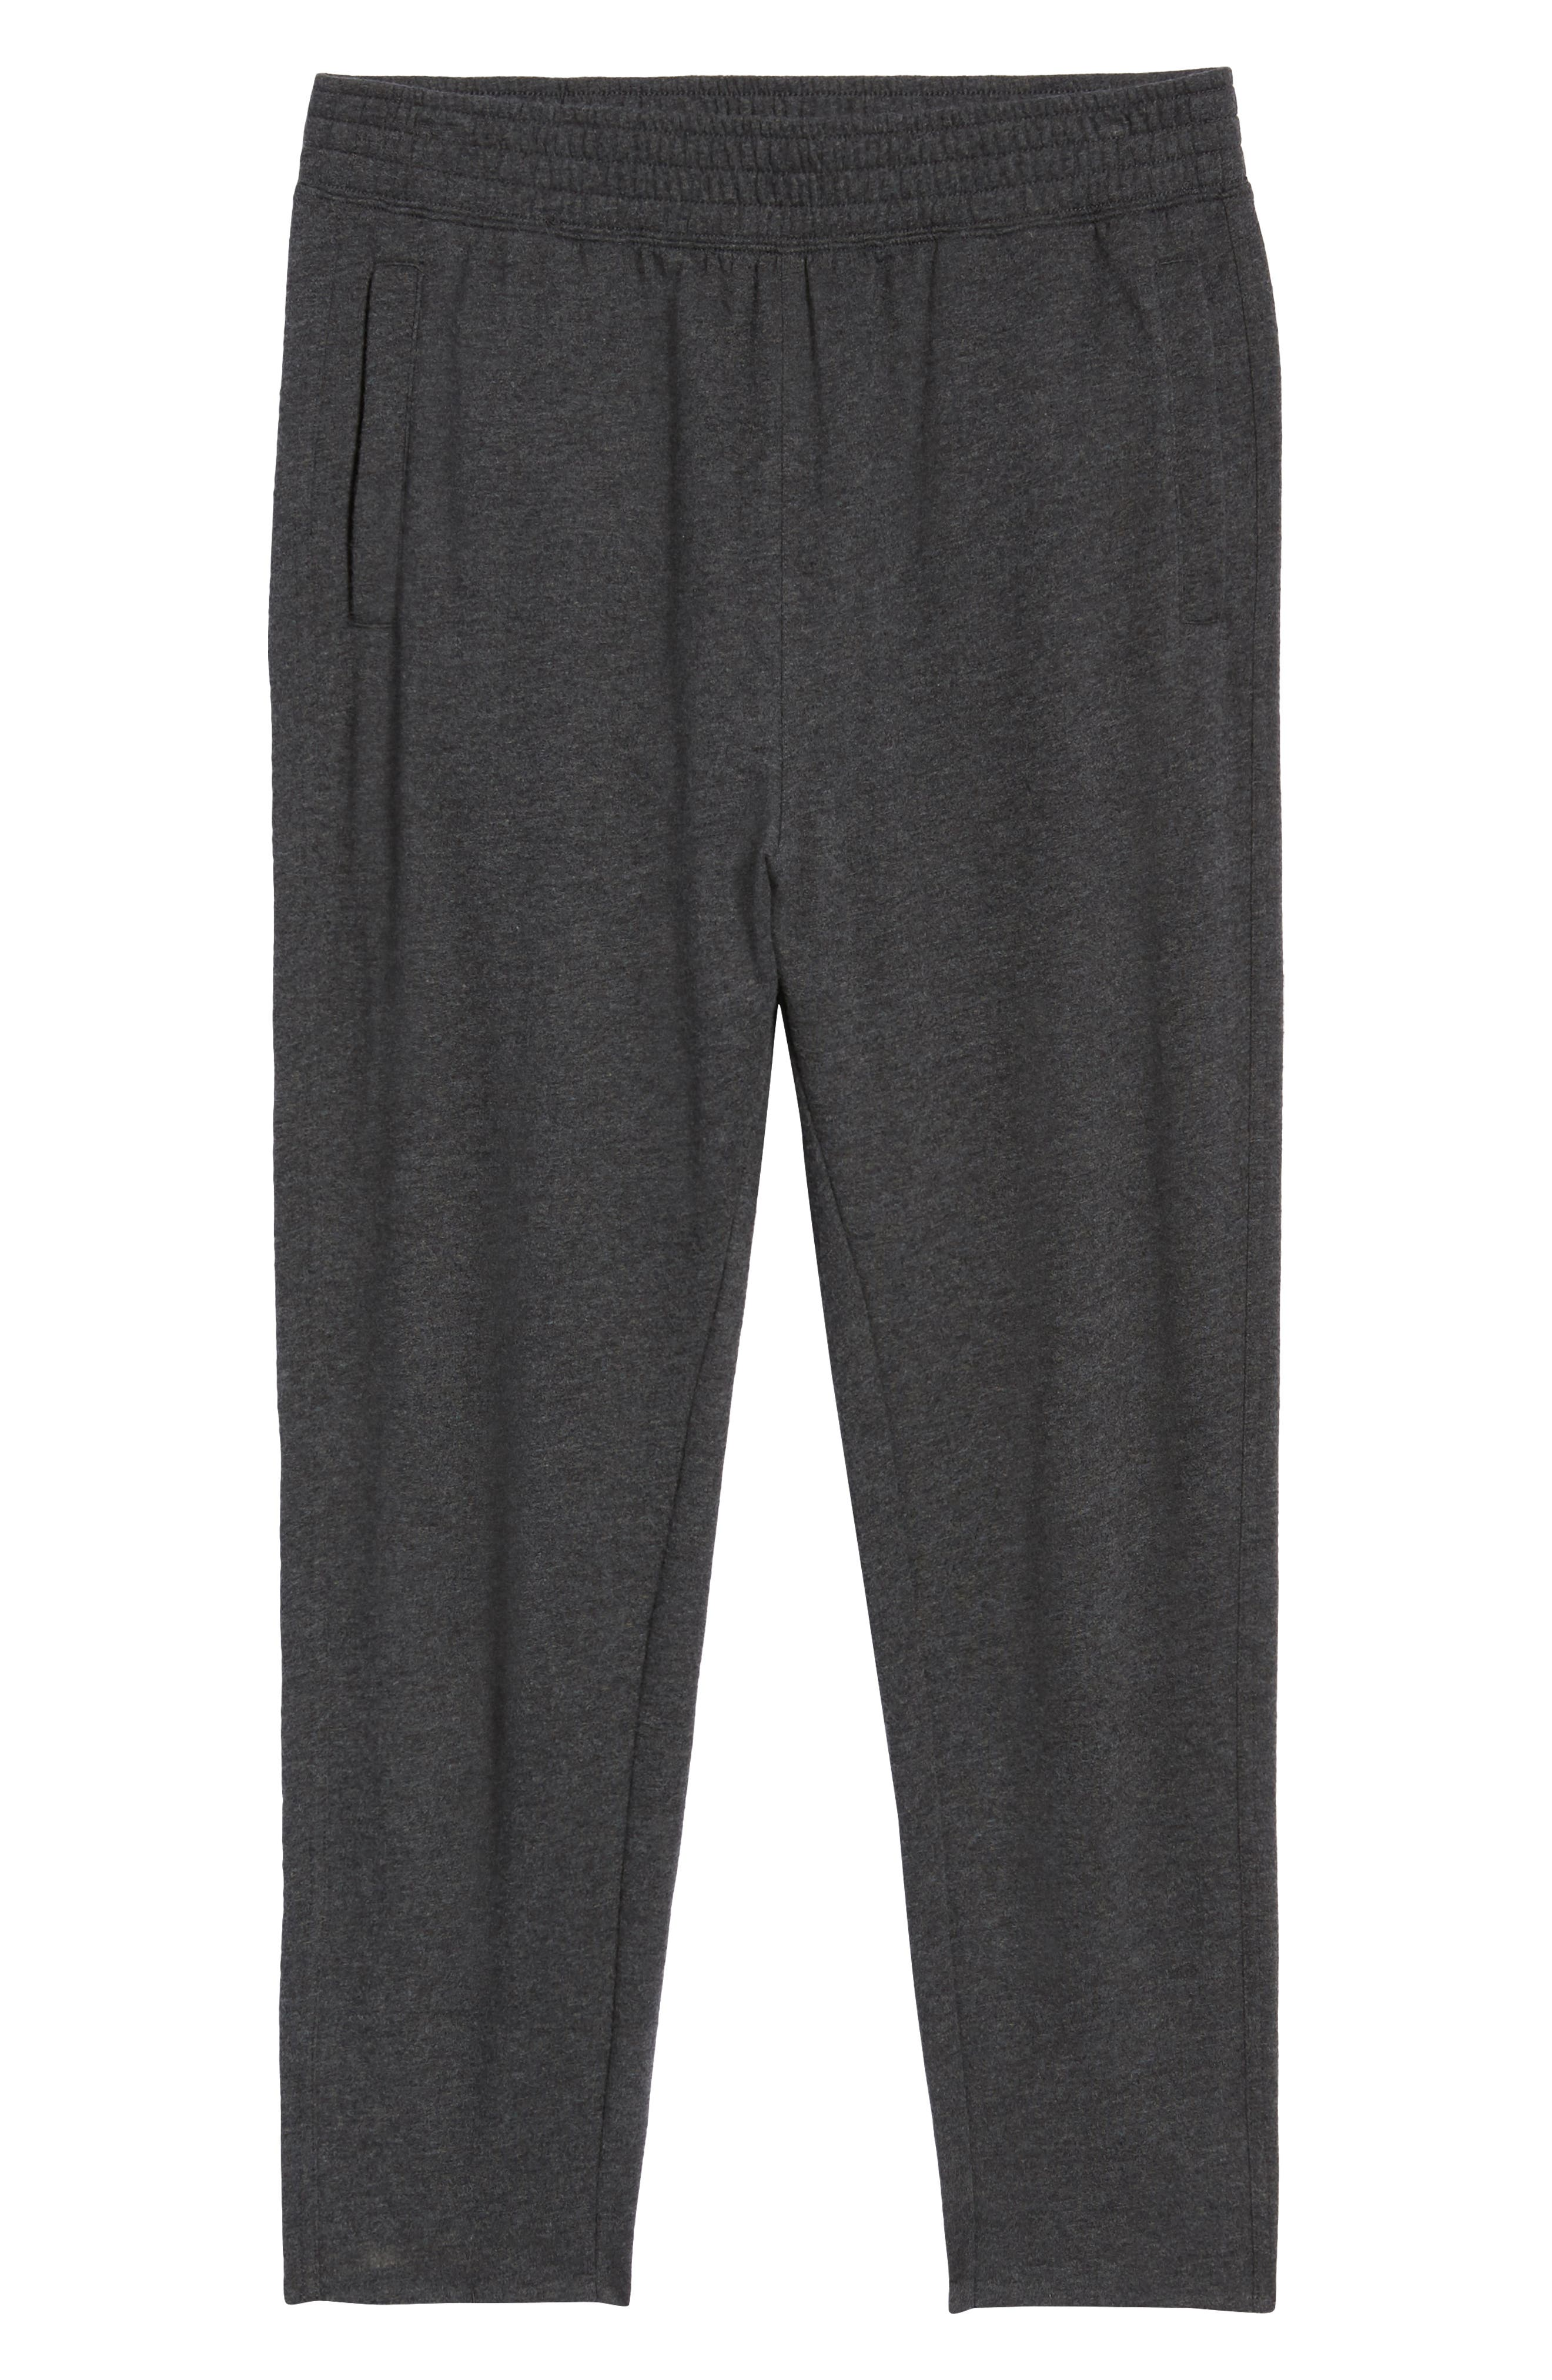 Jogger Pants,                             Alternate thumbnail 7, color,                             GREY DARK CHARCOAL HEATHER